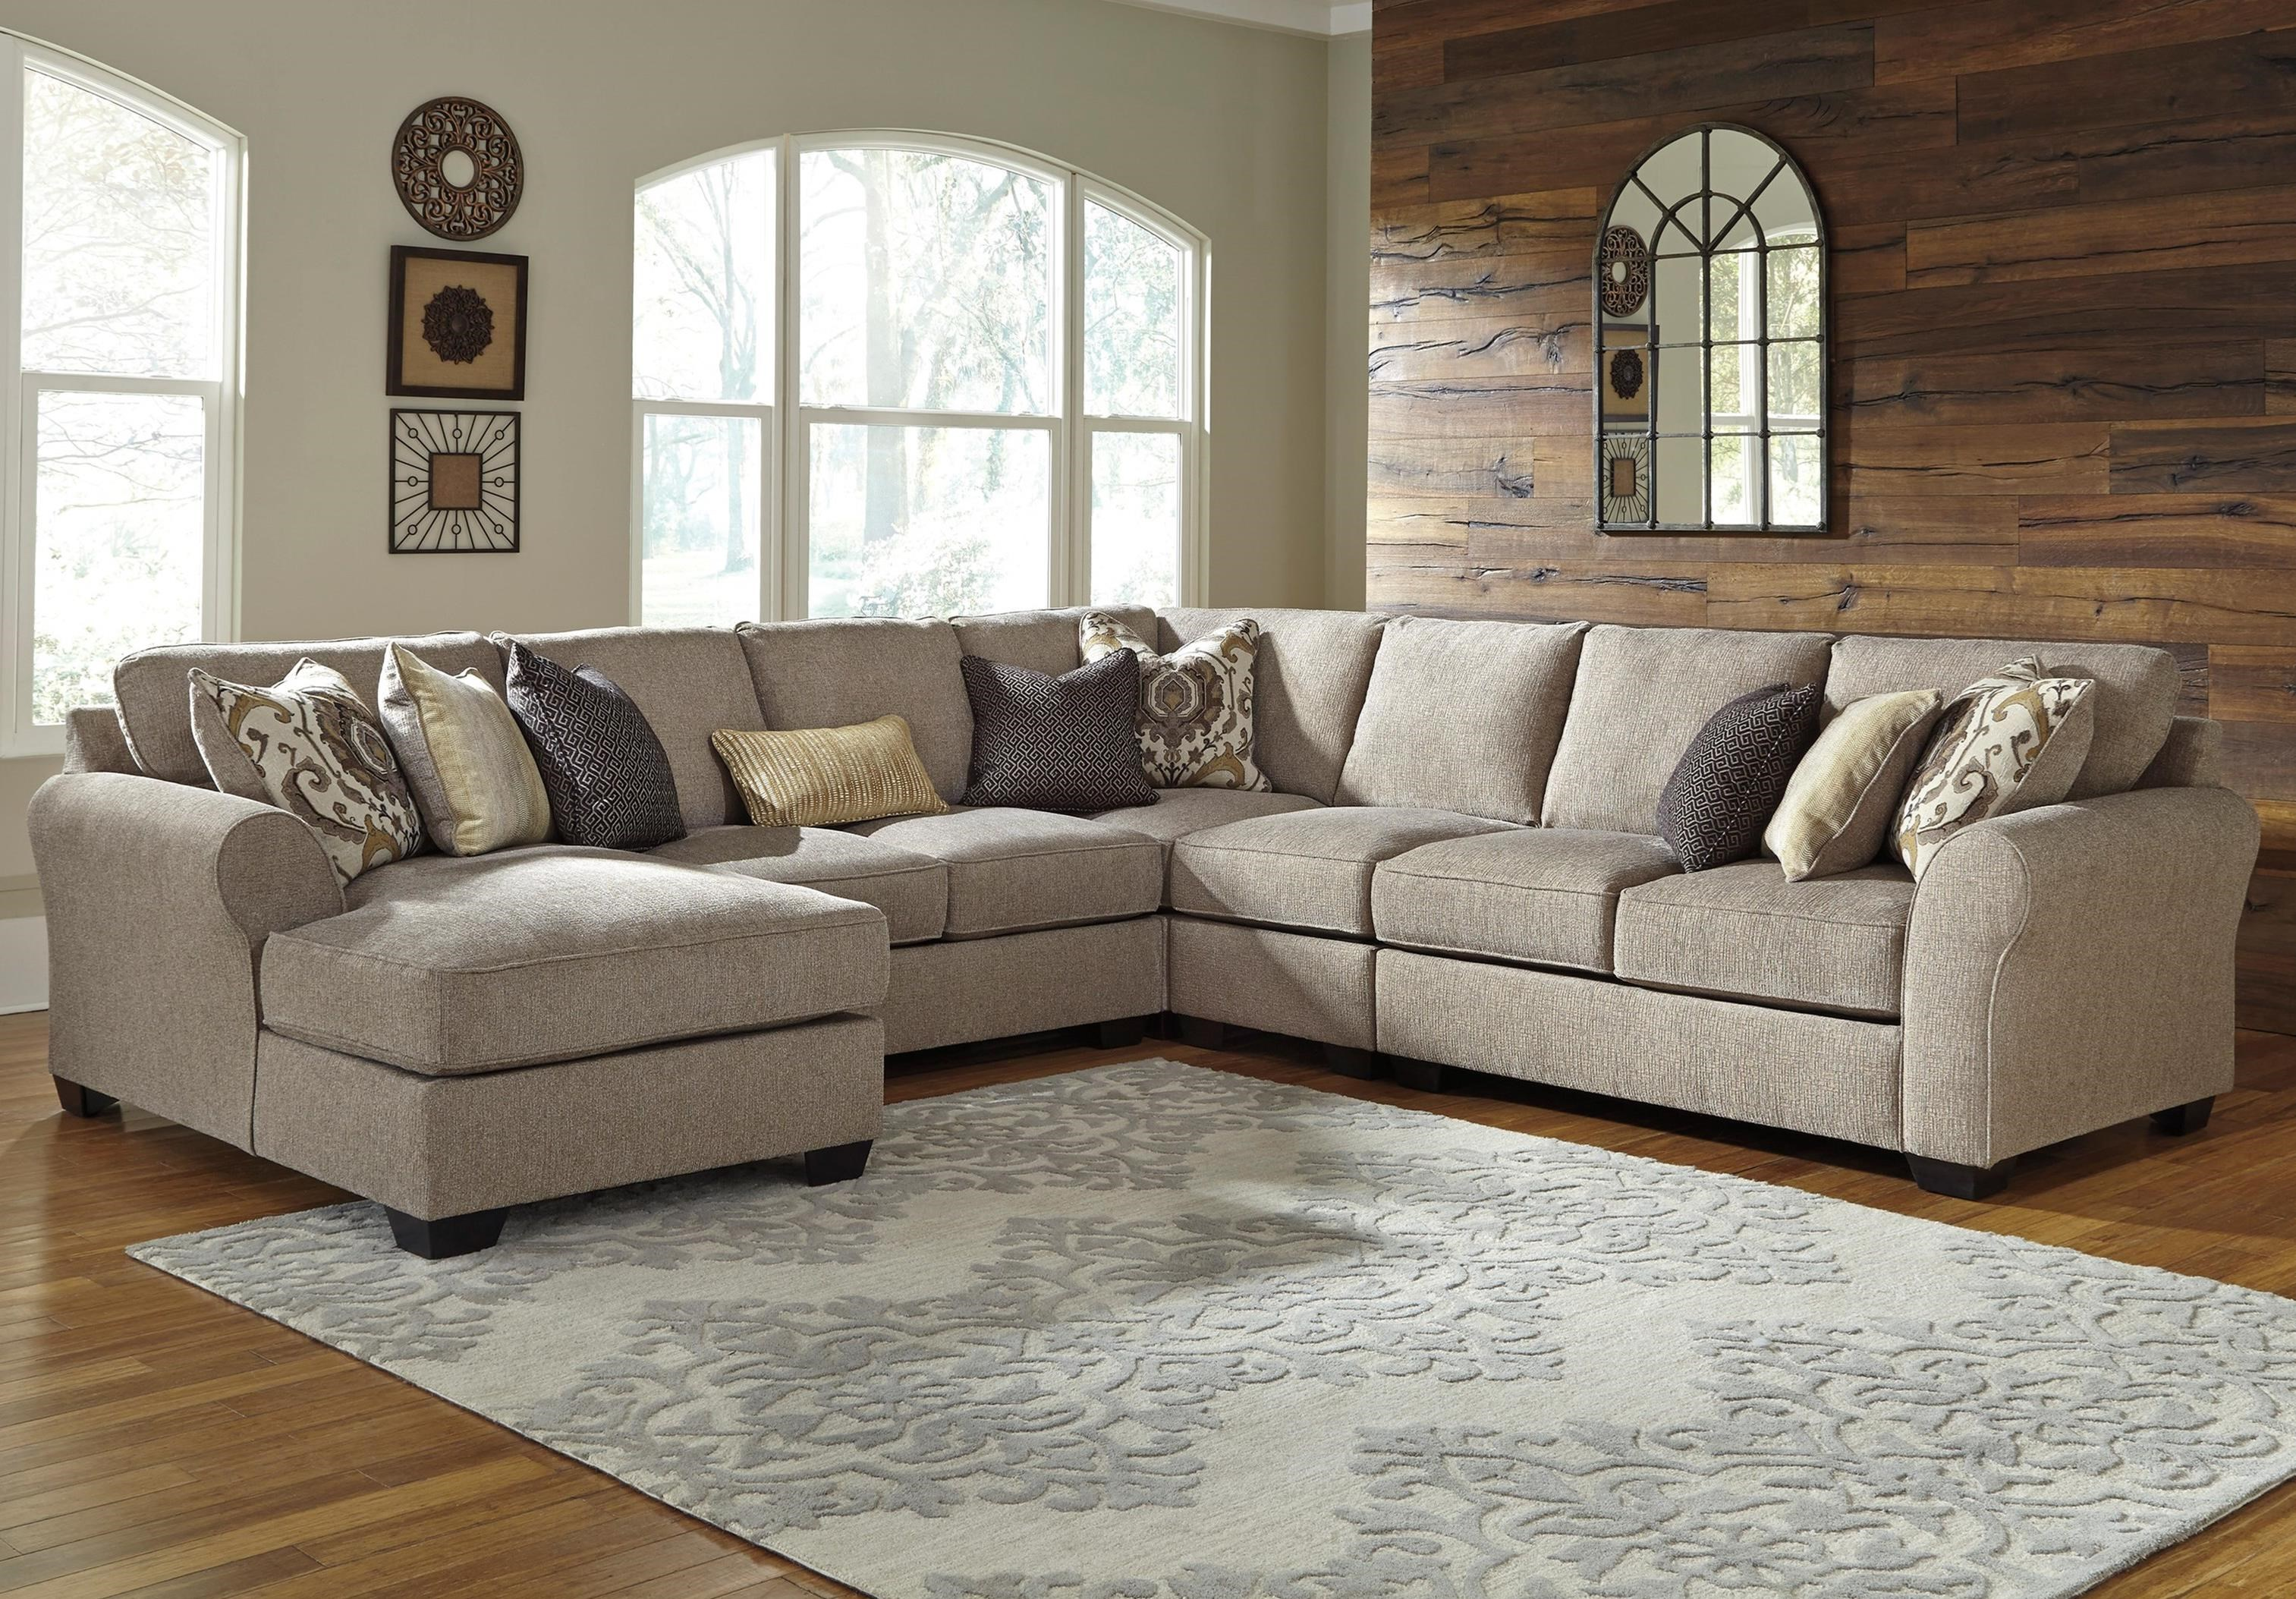 Pantomine 5-Piece Sectional with Chaise by Benchcraft at Furniture Barn